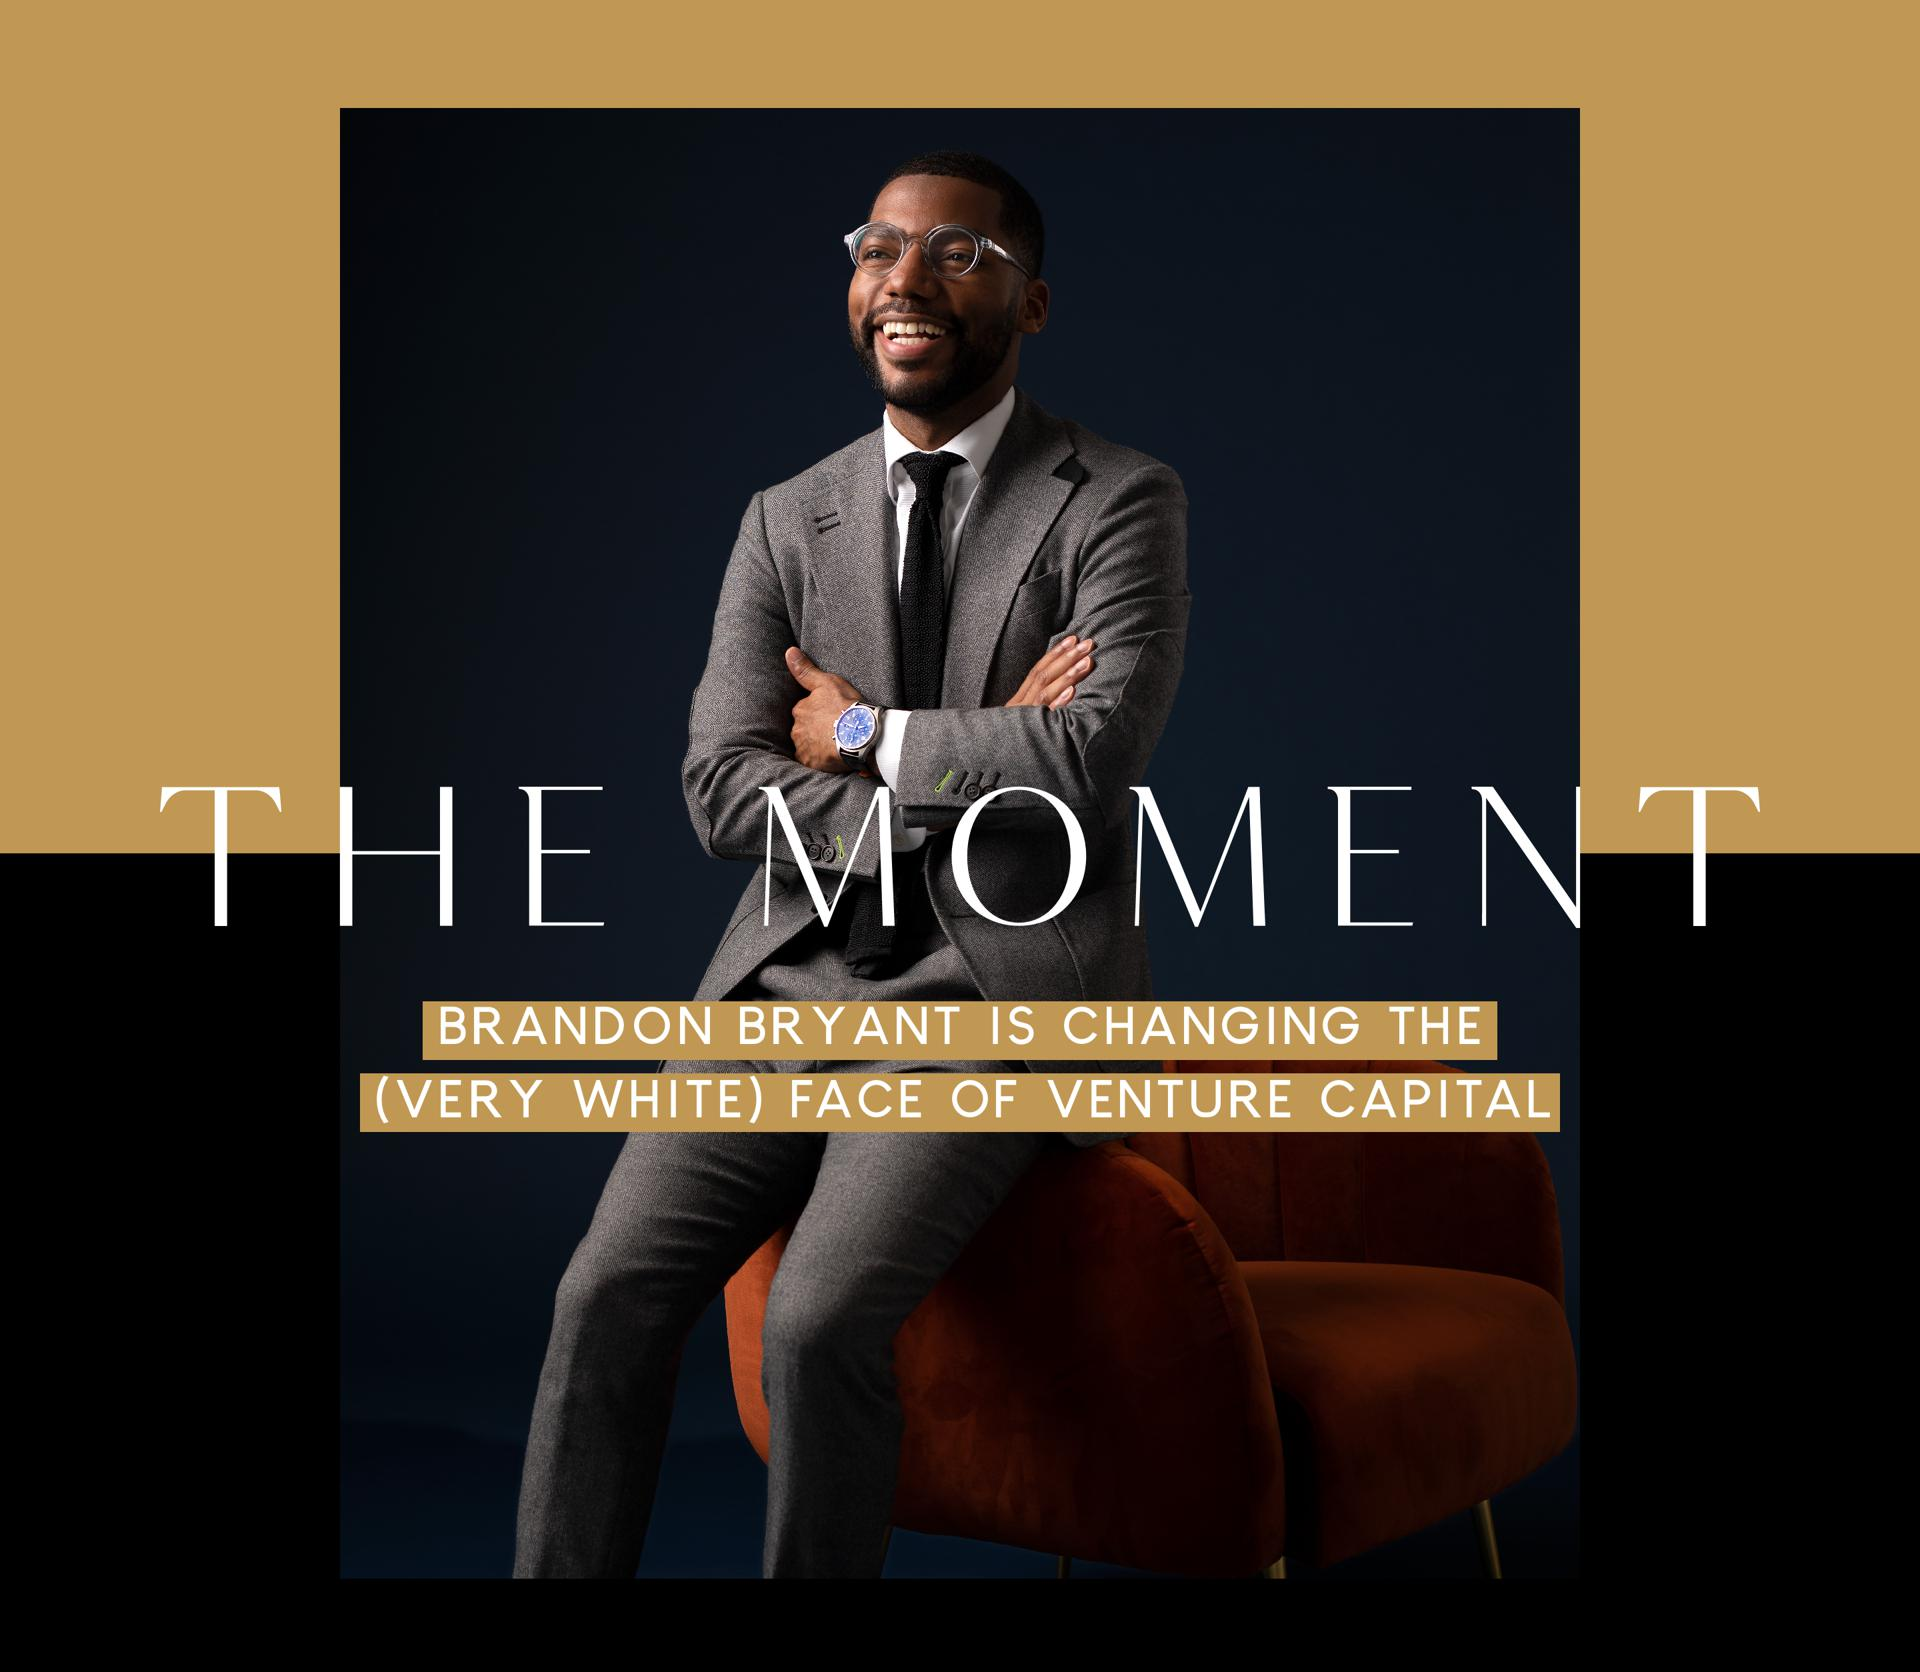 The Moment: Brandon Bryant Is Changing The (Very White) Face Of Venture Capital